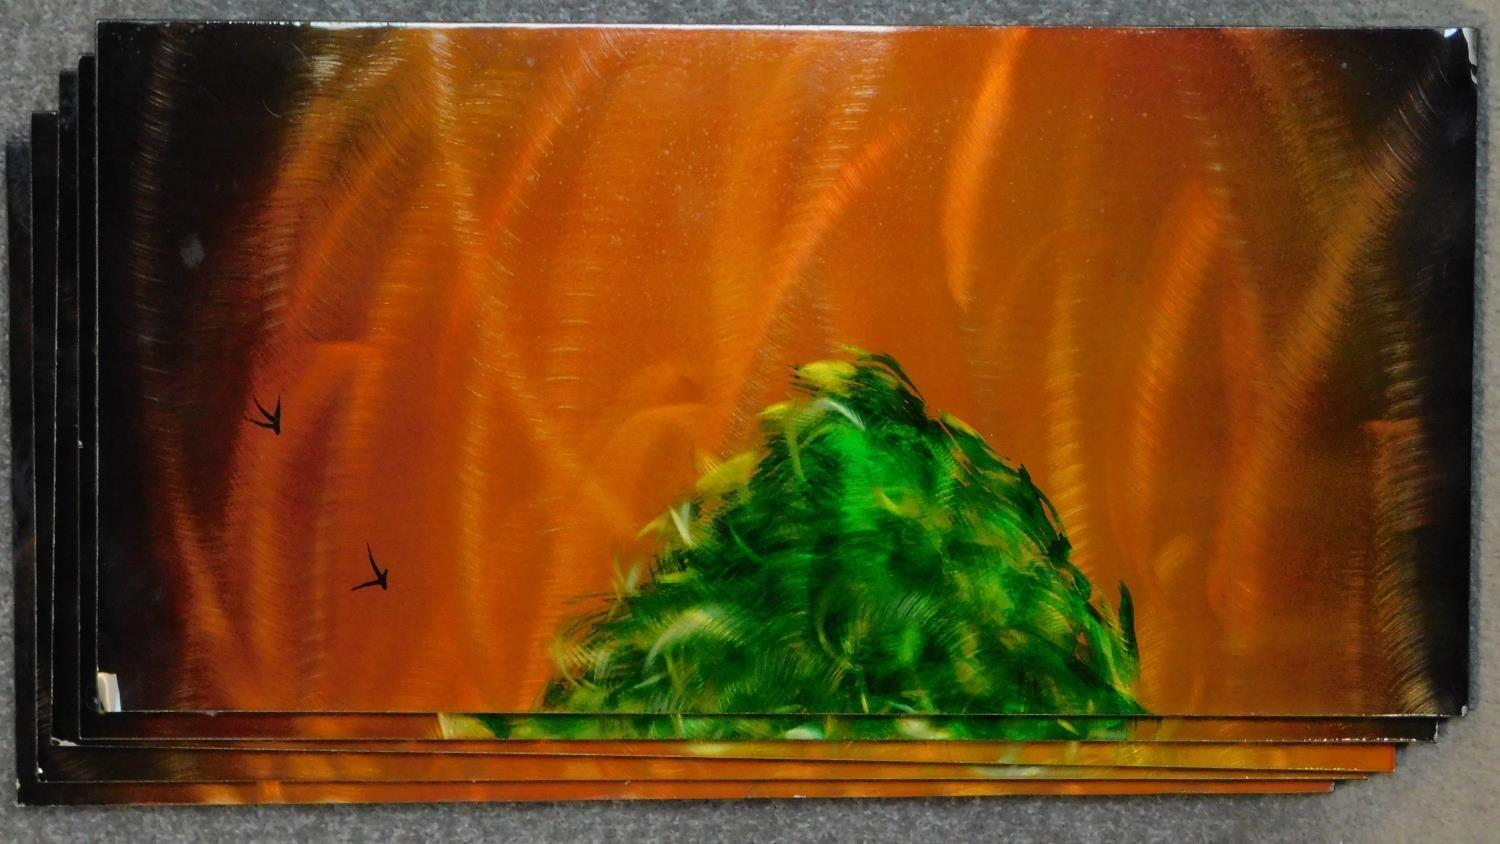 A set of five decorative lacquered panels, together depicting a green tree against an orange sky. - Image 4 of 4